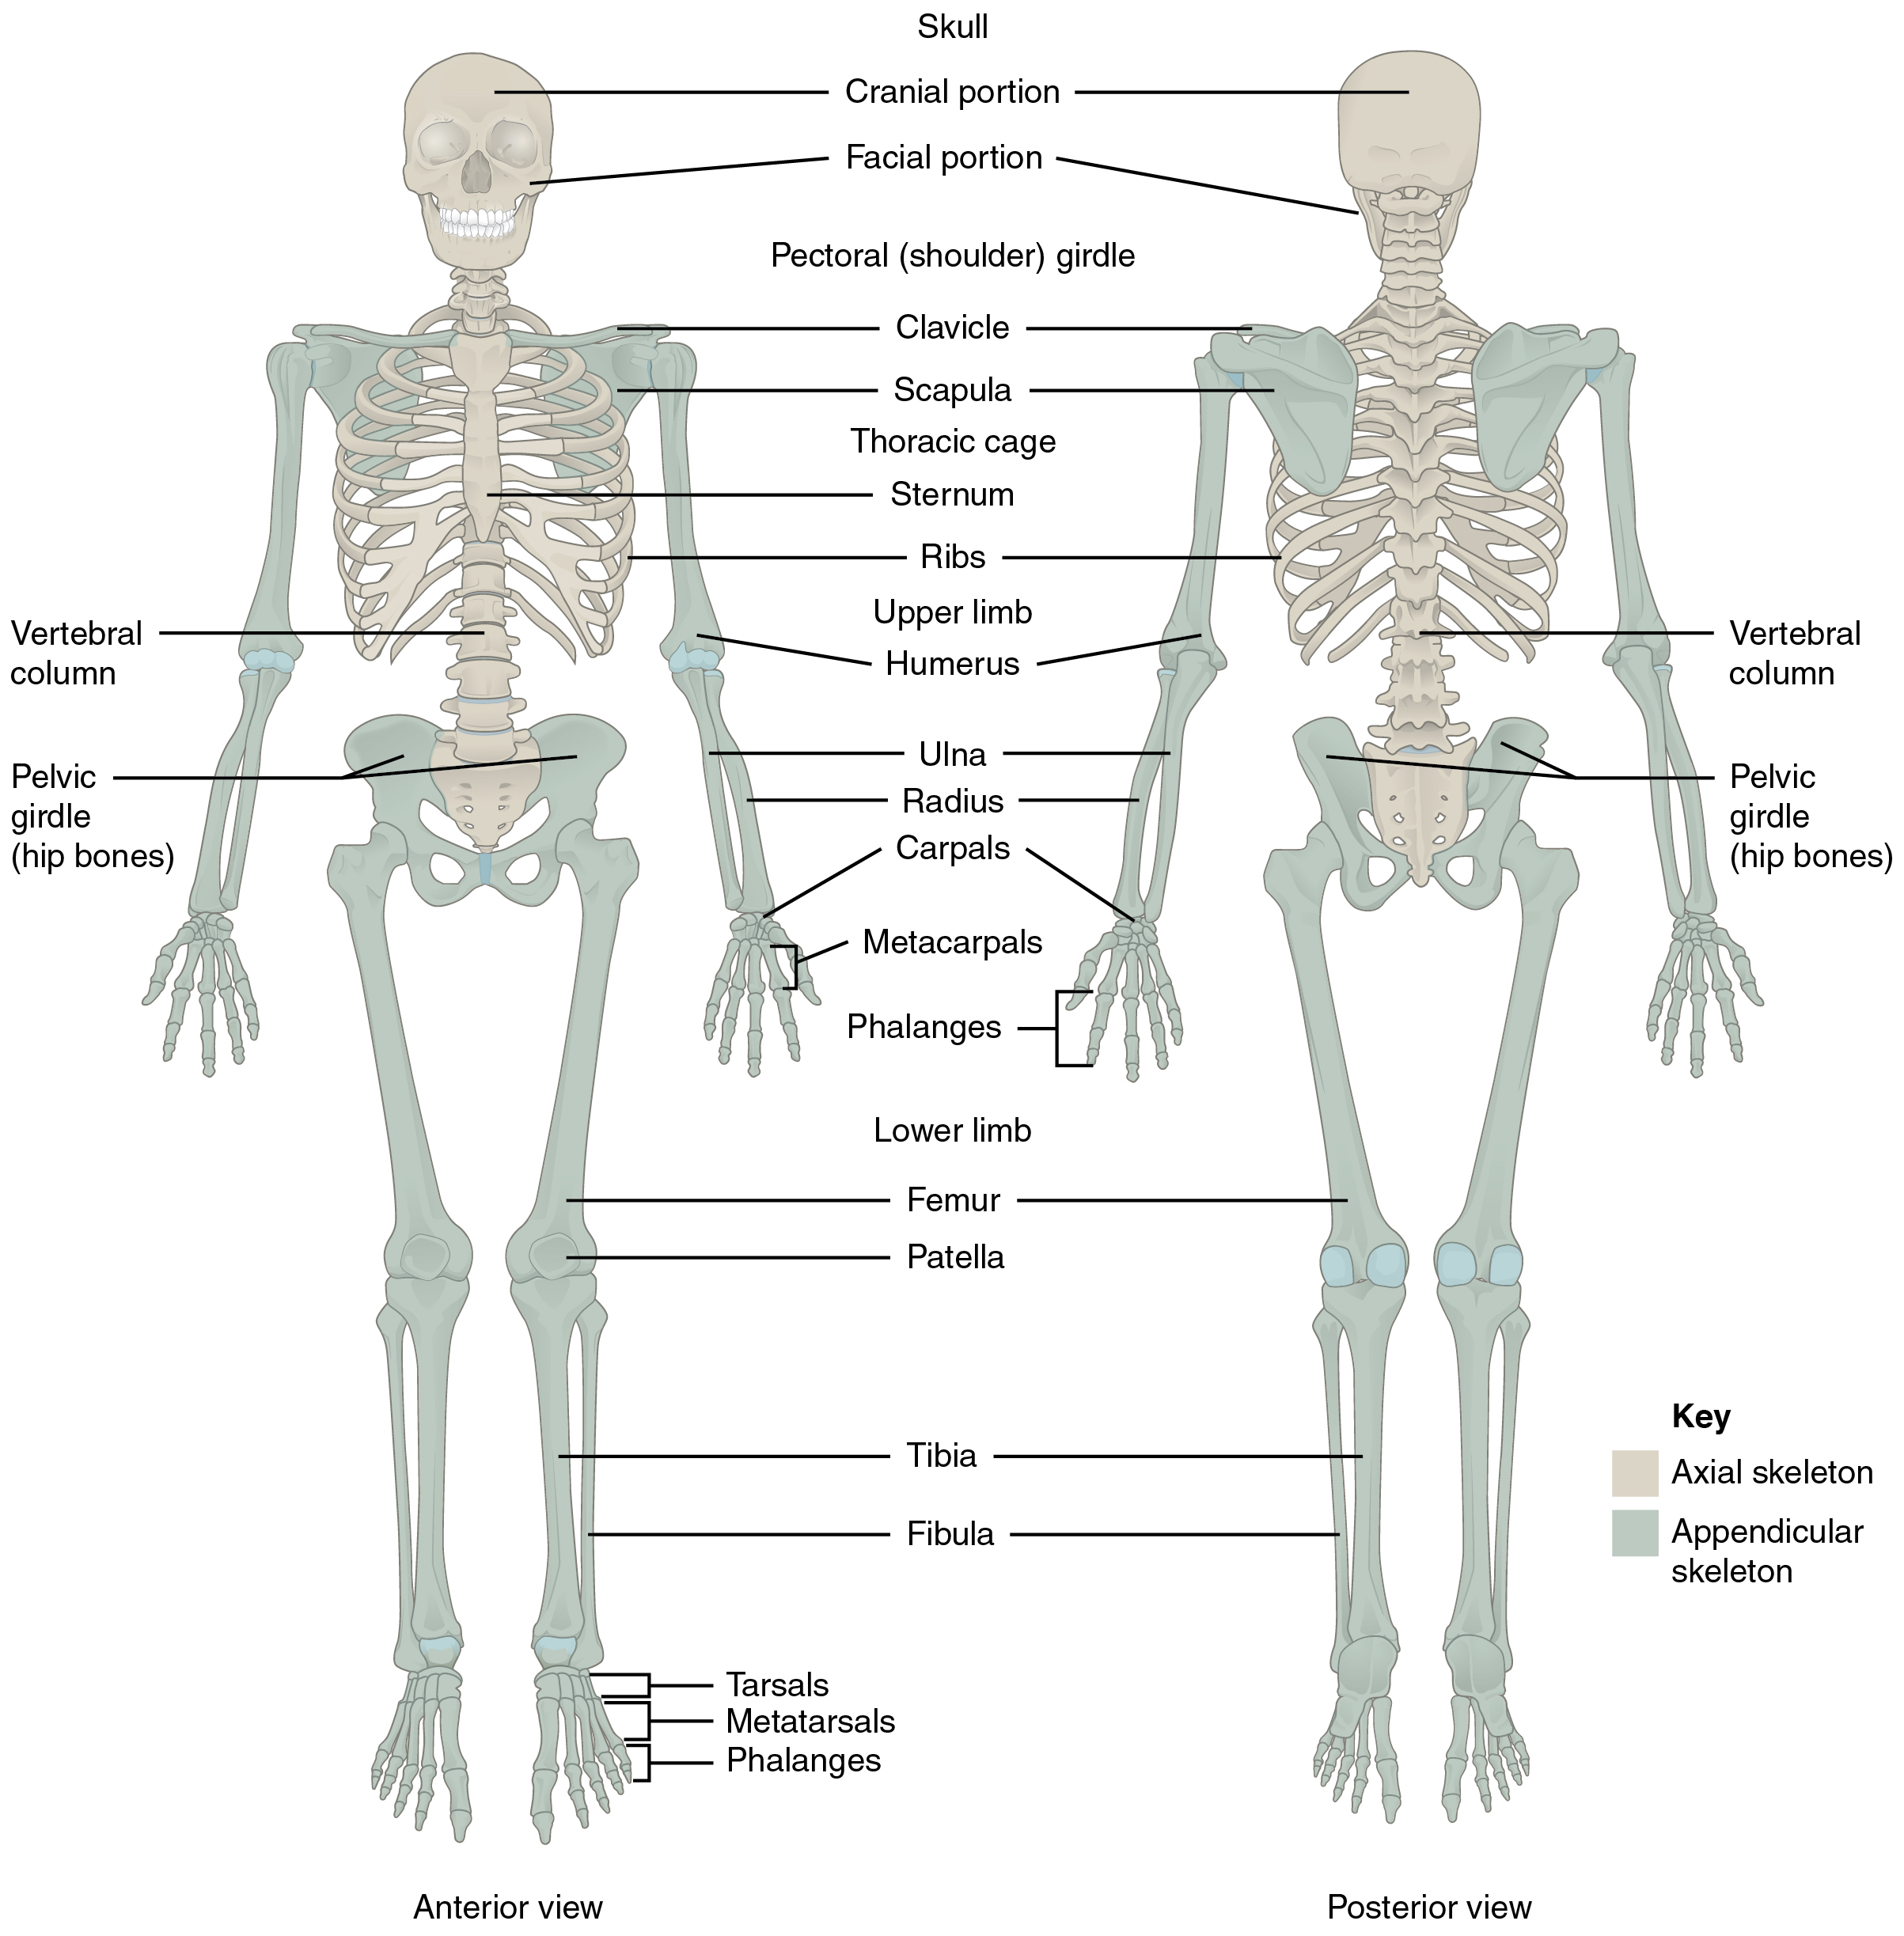 7 1 Divisions Of The Skeletal System Anatomy And Physiology